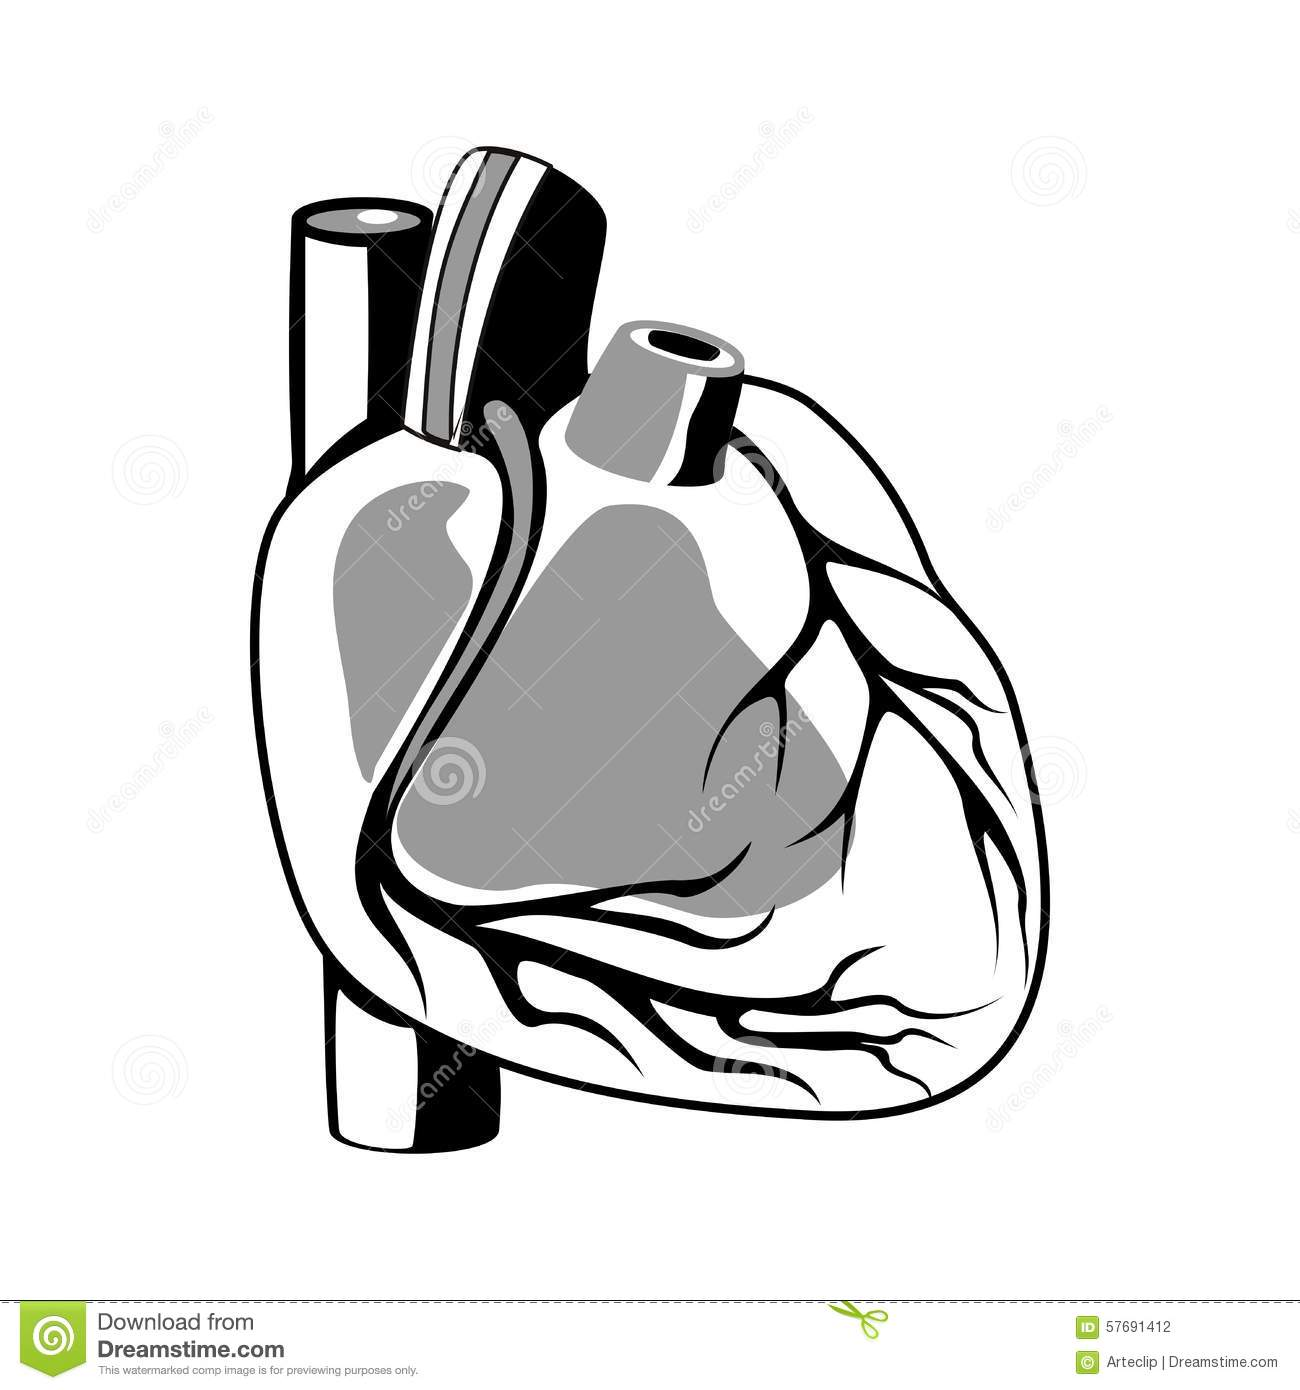 Human heart outline stock illustration illustration of scientific human heart outline stock illustration illustration of scientific 57691412 ccuart Gallery